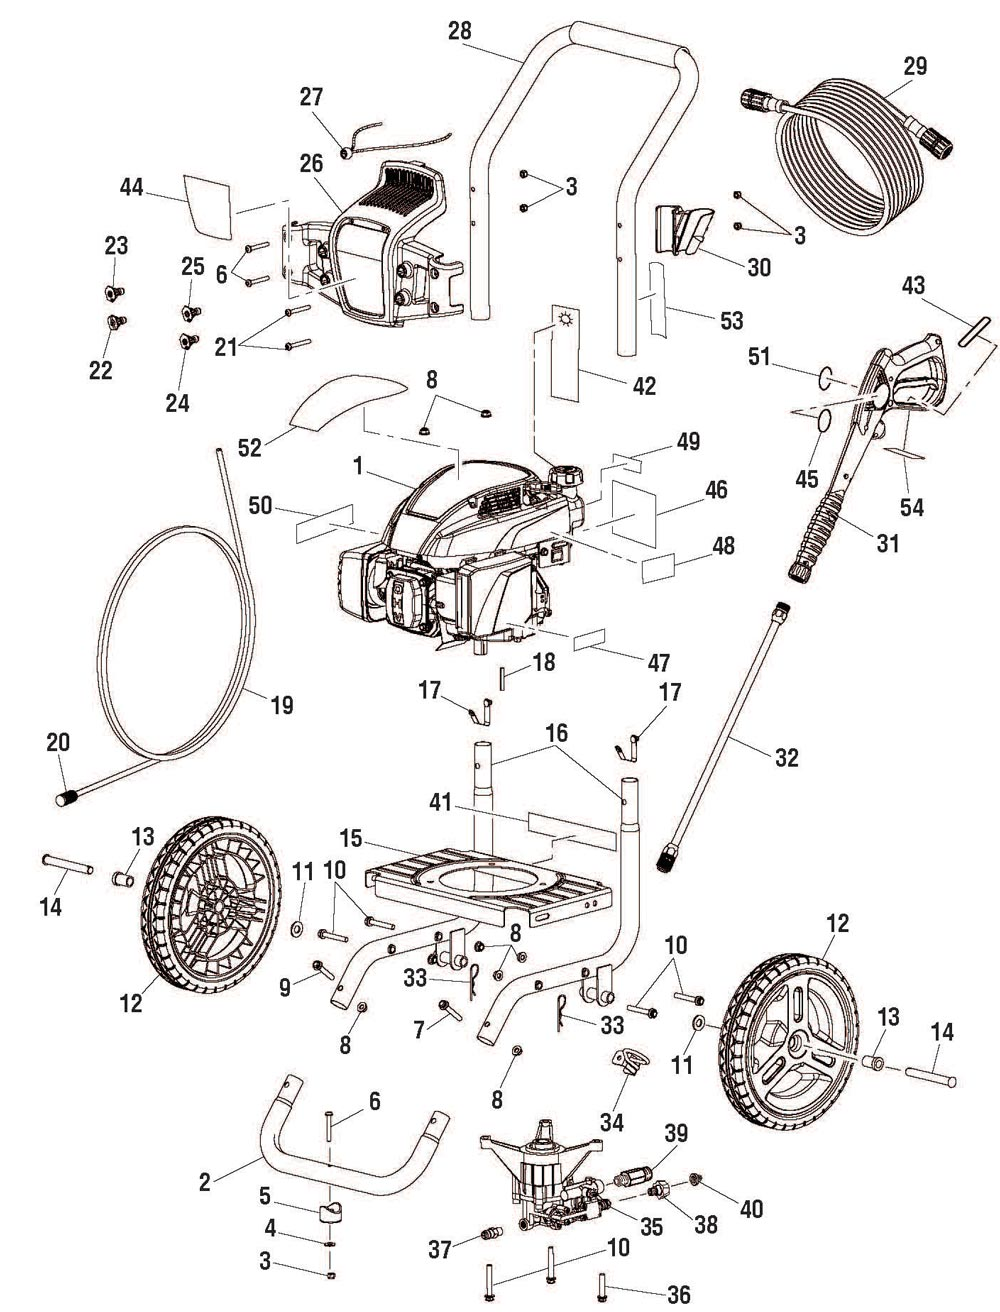 WF80710, WF80911 - Pressure Washer Parts schematic